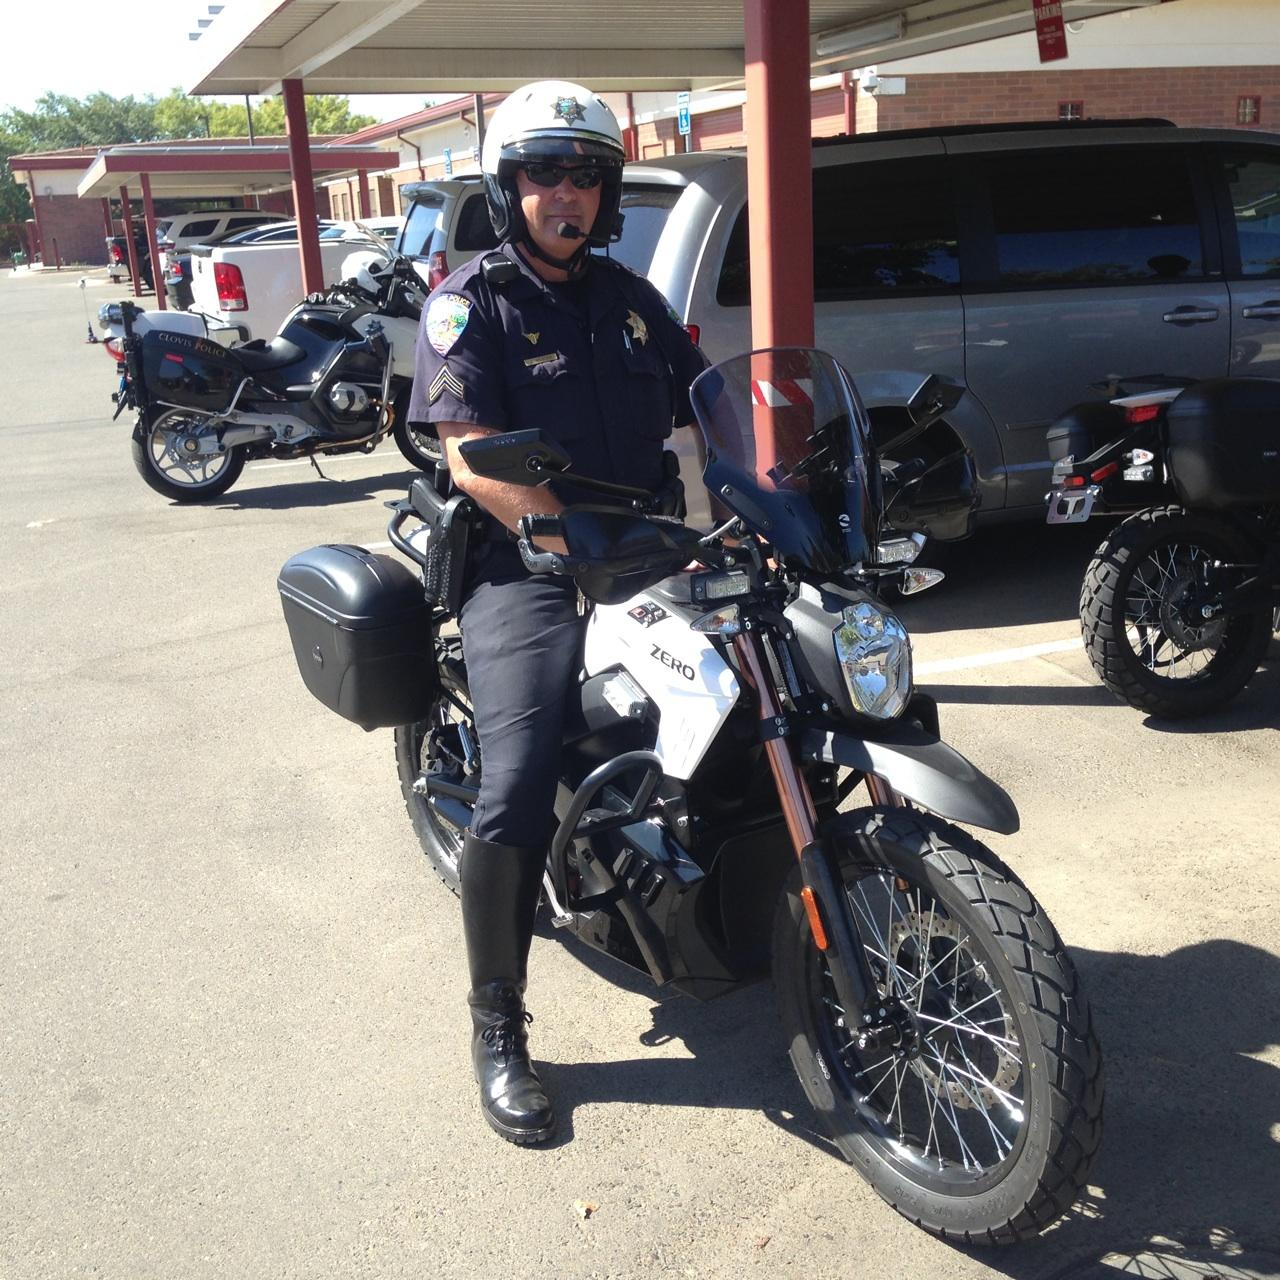 John Weaver Is A Traffic Corp For The Clovis Police Department He And His Fleet Will Begin To Use Electric Motorcycles As Soon Friday